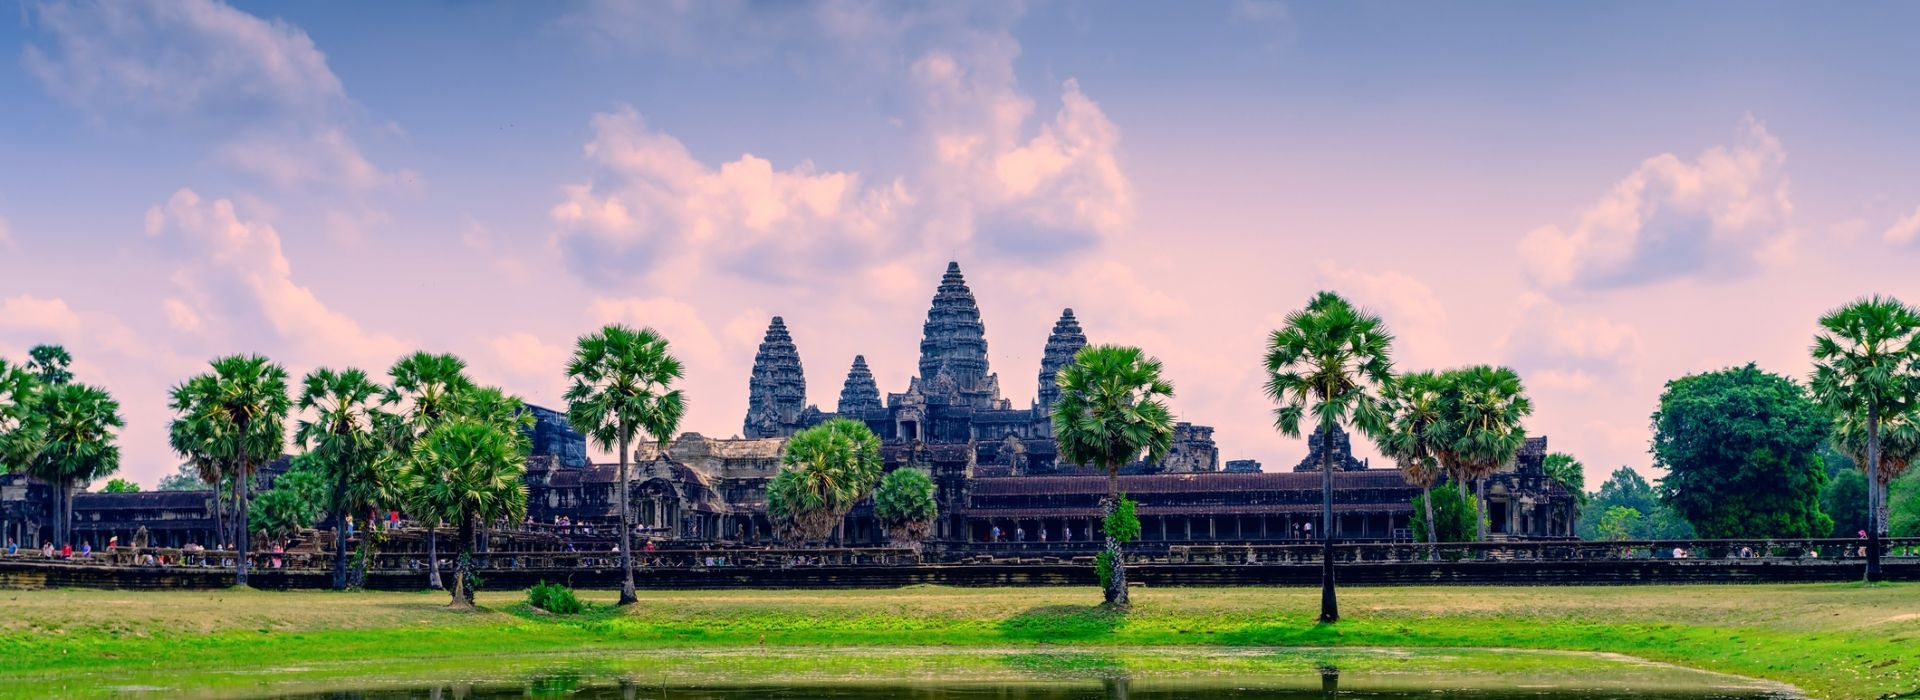 Countryside and village visits Tours in Angkor Wat